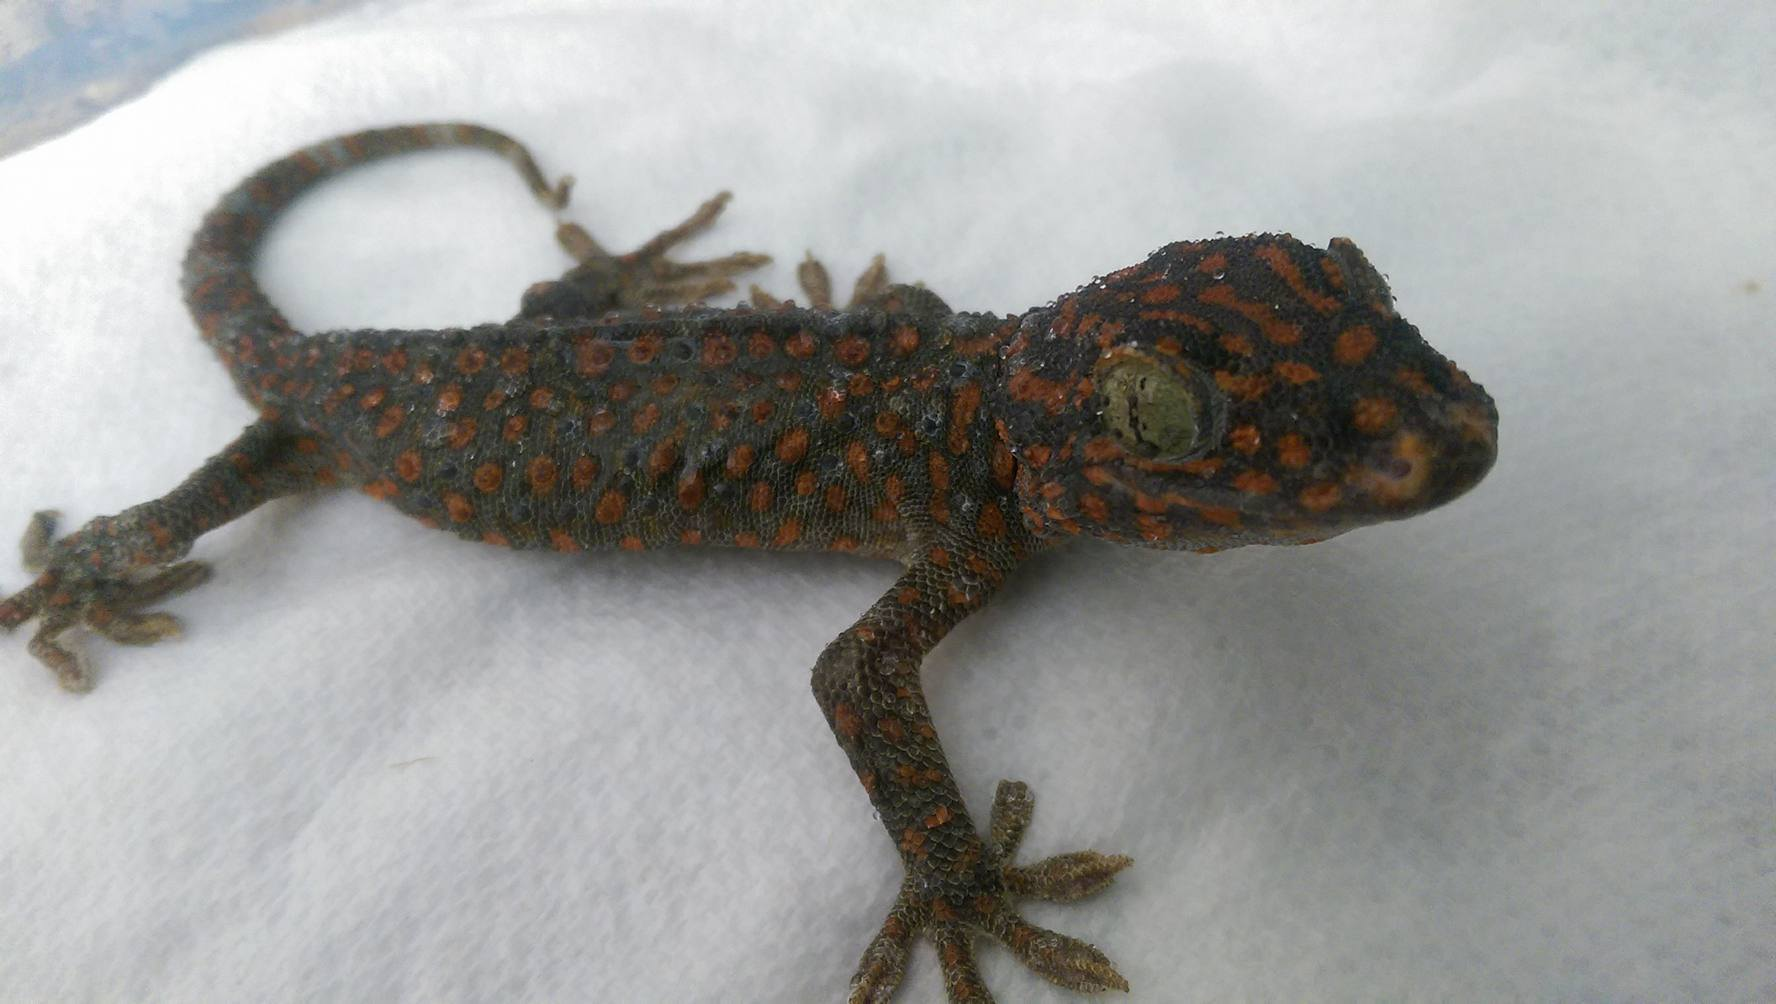 Male CB 2015 Tokay gecko for rehoming to experienced keeper-13453192_1244572752242302_814849002_o-1-.jpg